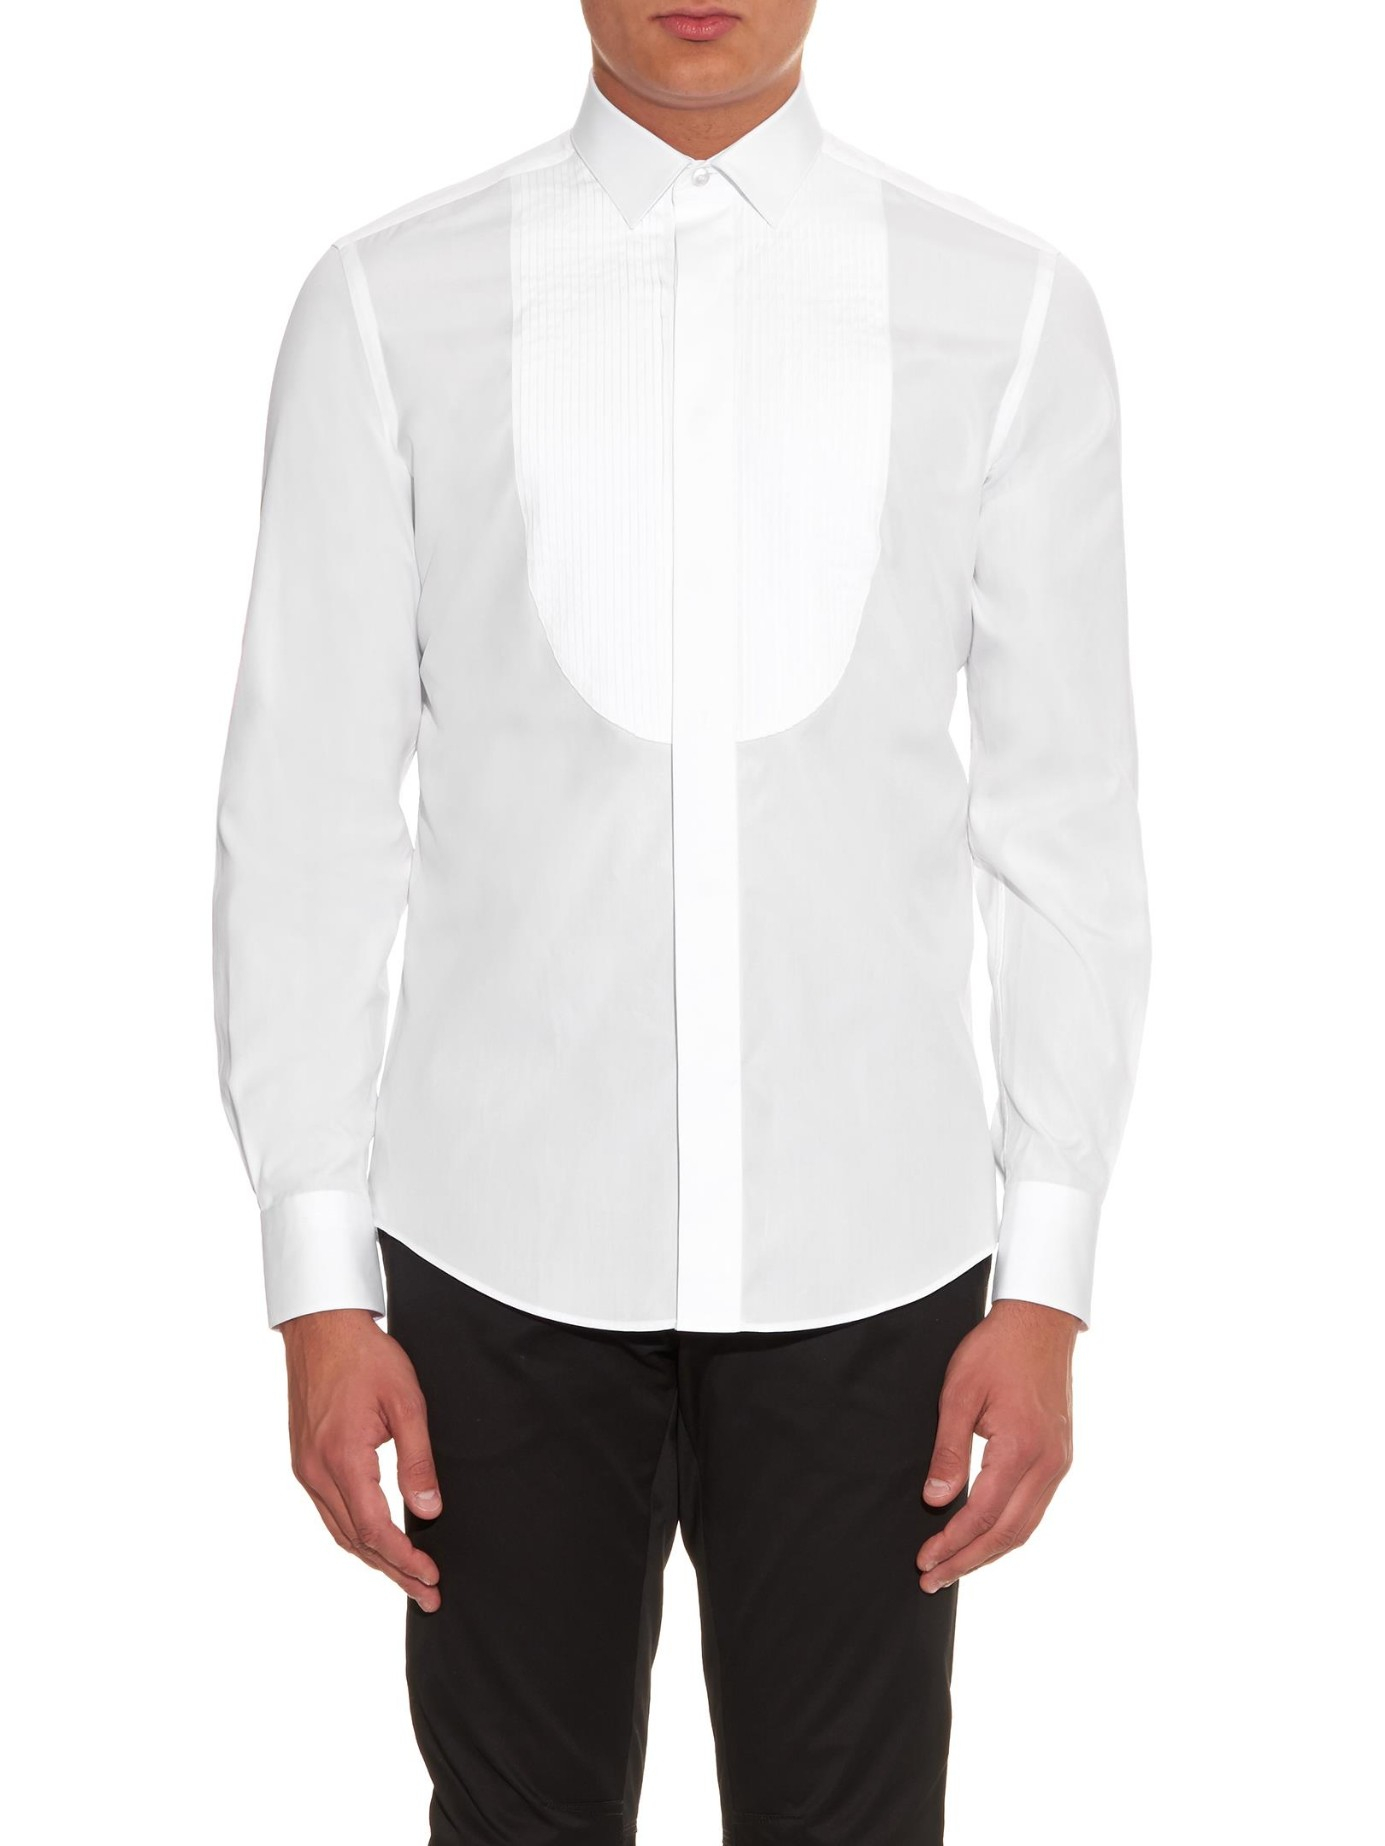 Lanvin pleated bib front cotton shirt in white for men lyst for Tuxedo shirt bib front